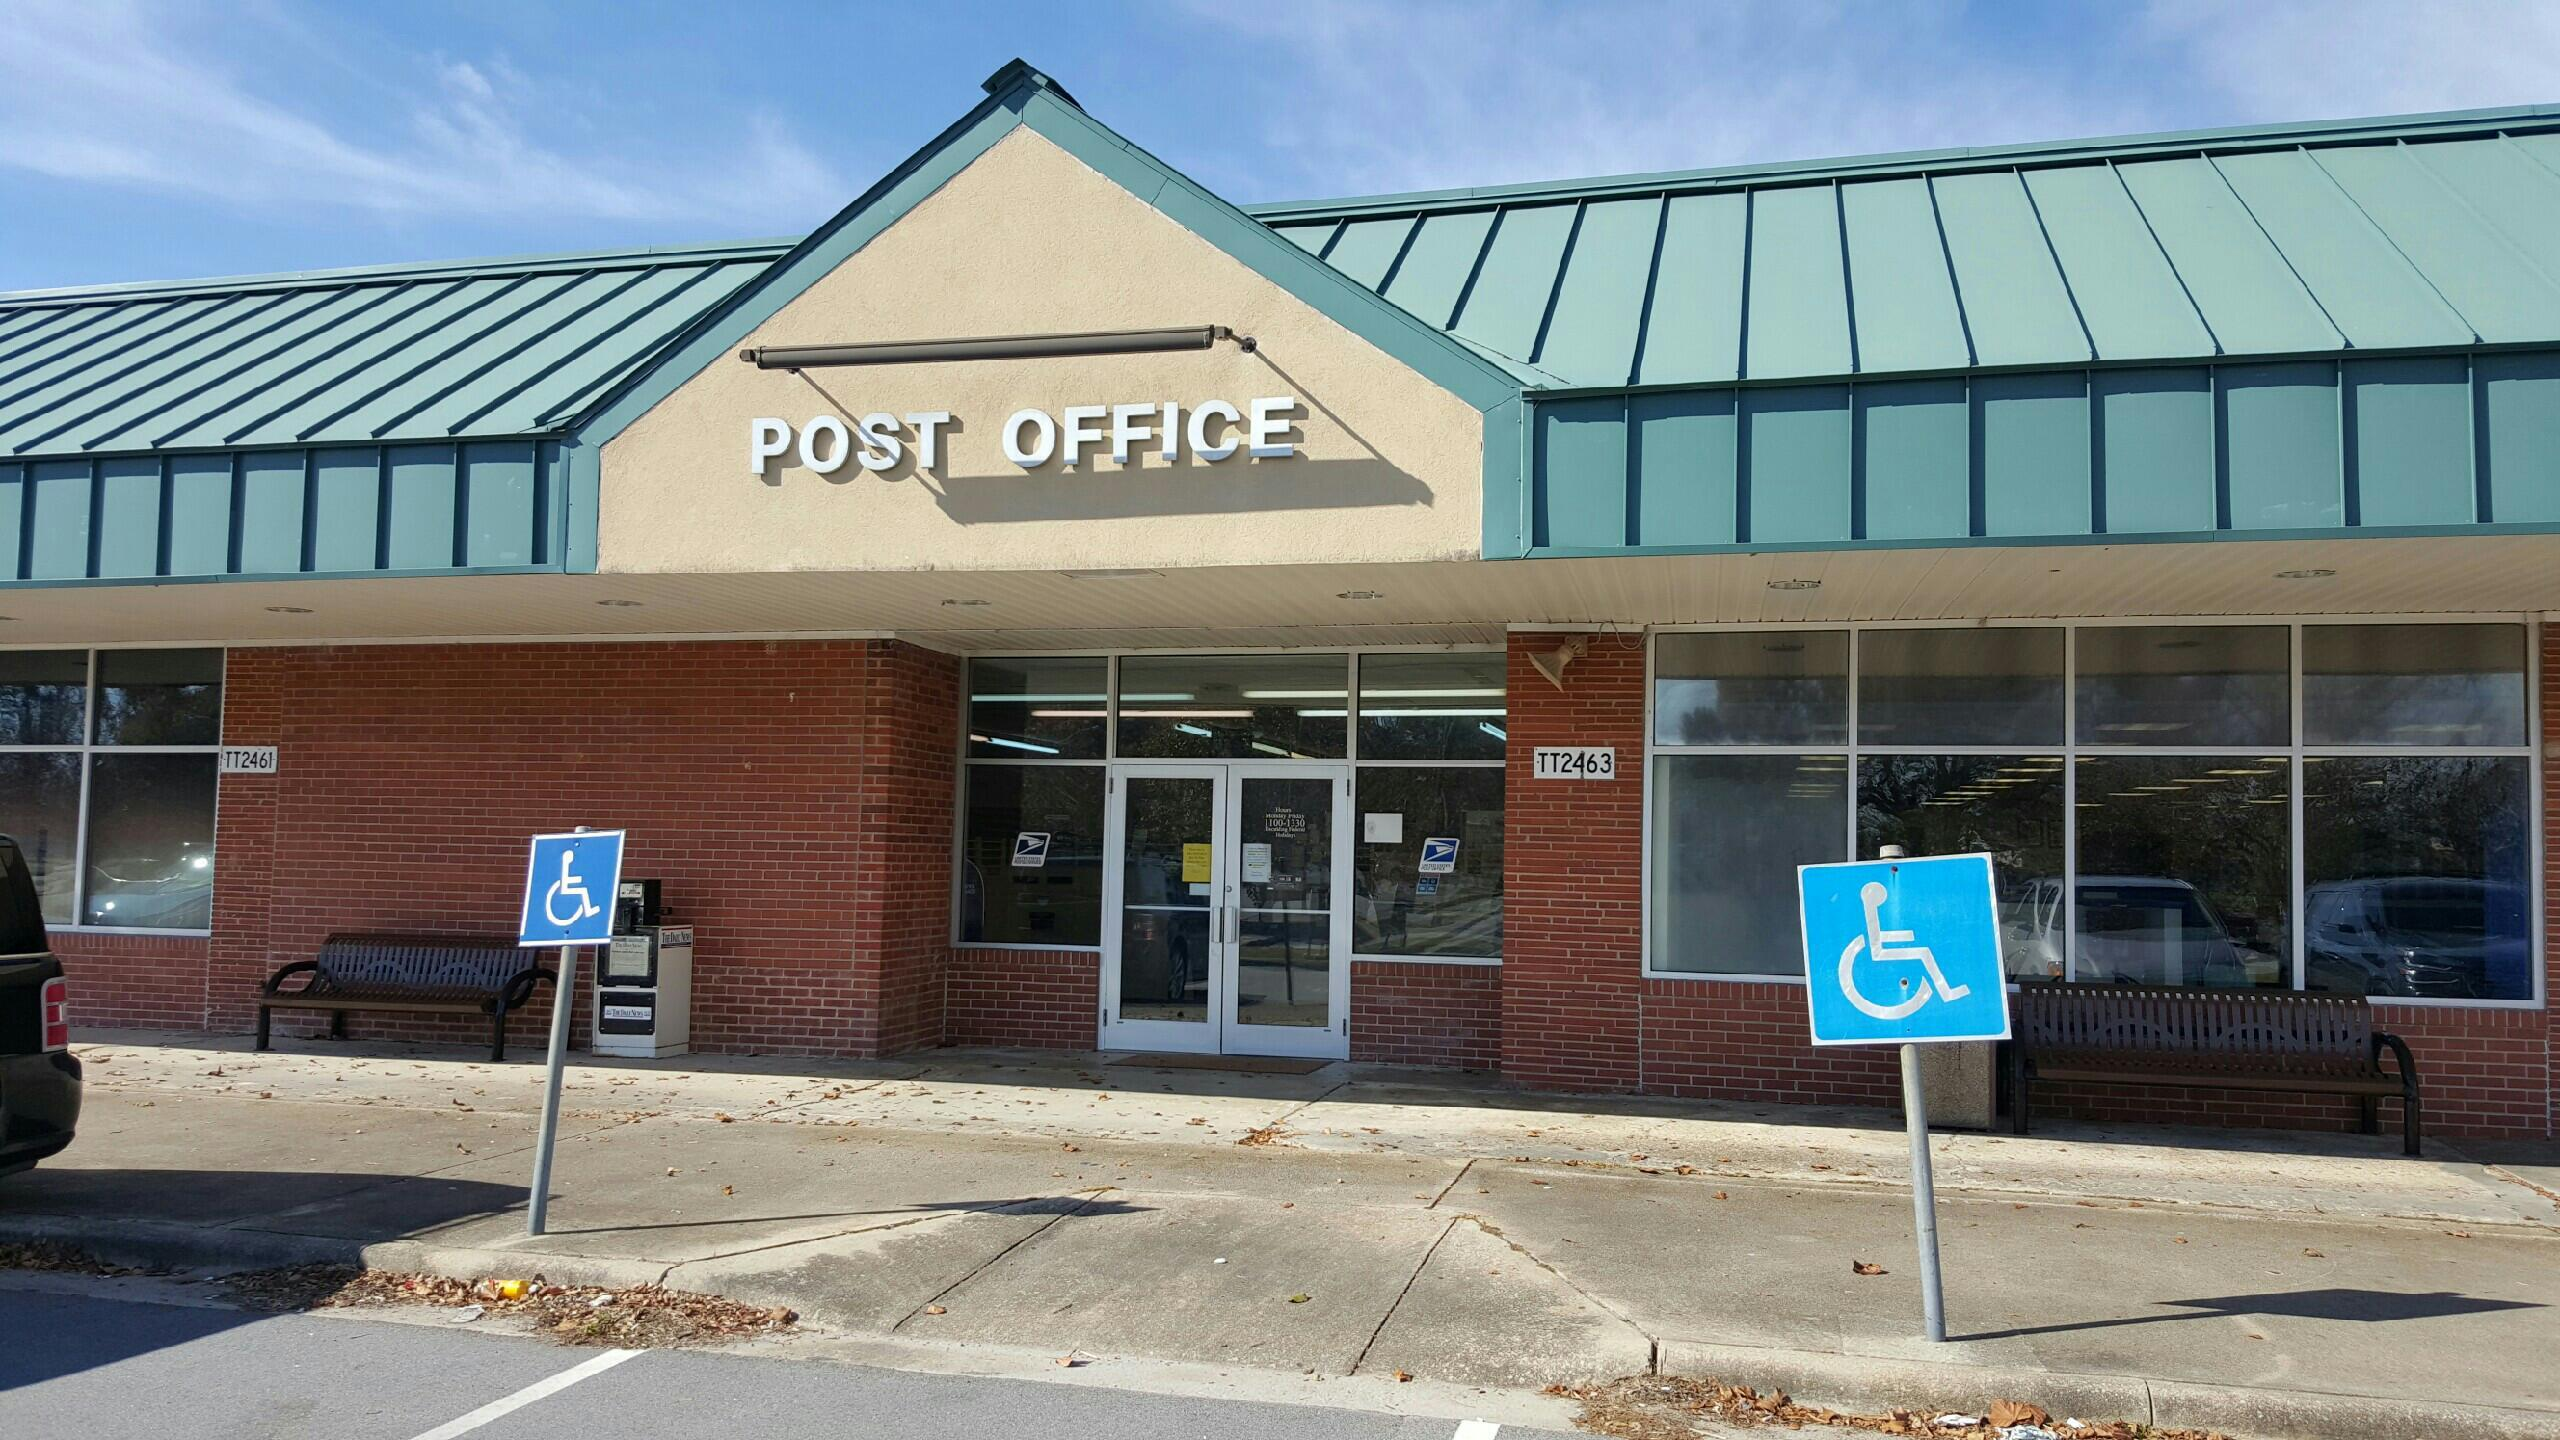 Tarawa Terrace Post Office 2463 Iwo Jima Blvd 910 353 1874 Mon Fri 1100 1330